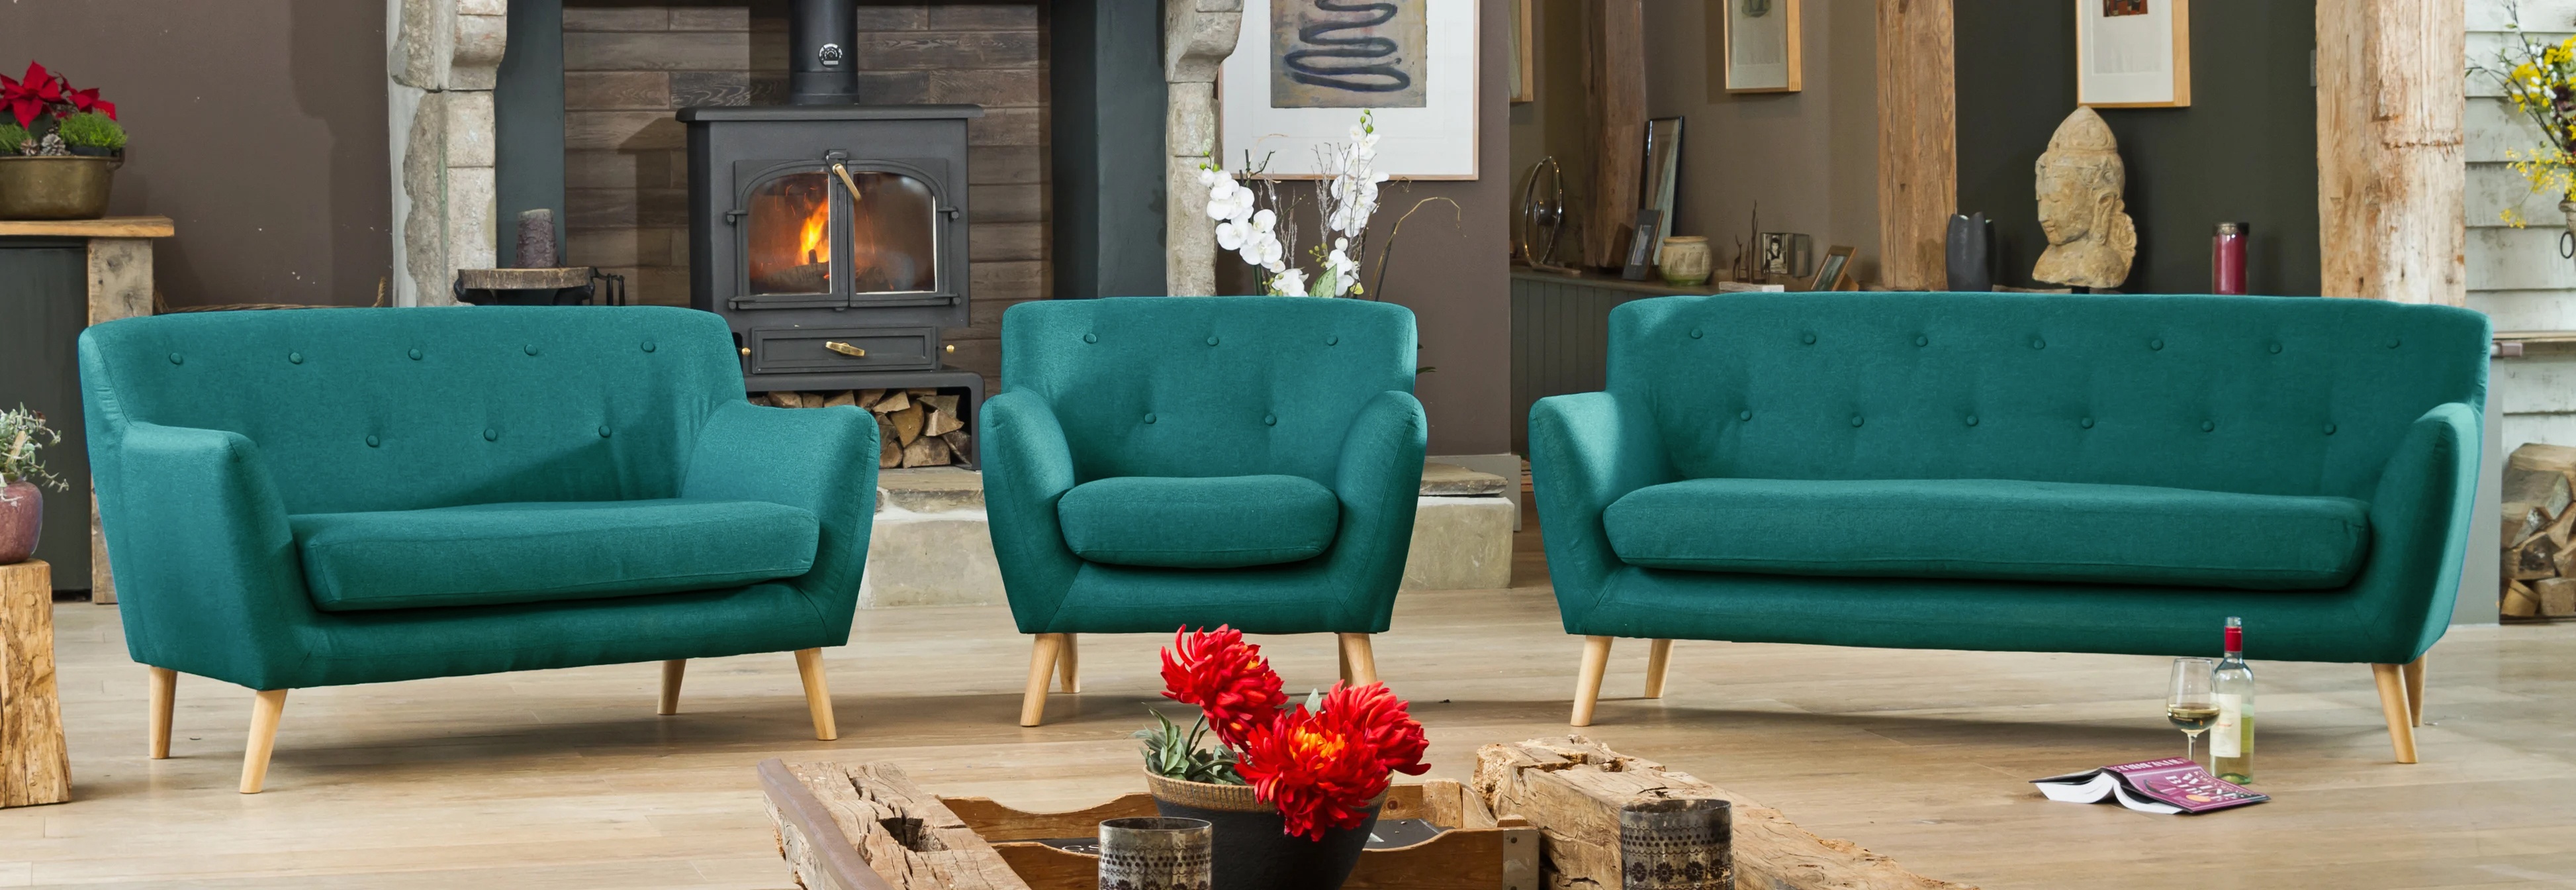 Bourchier suite teal